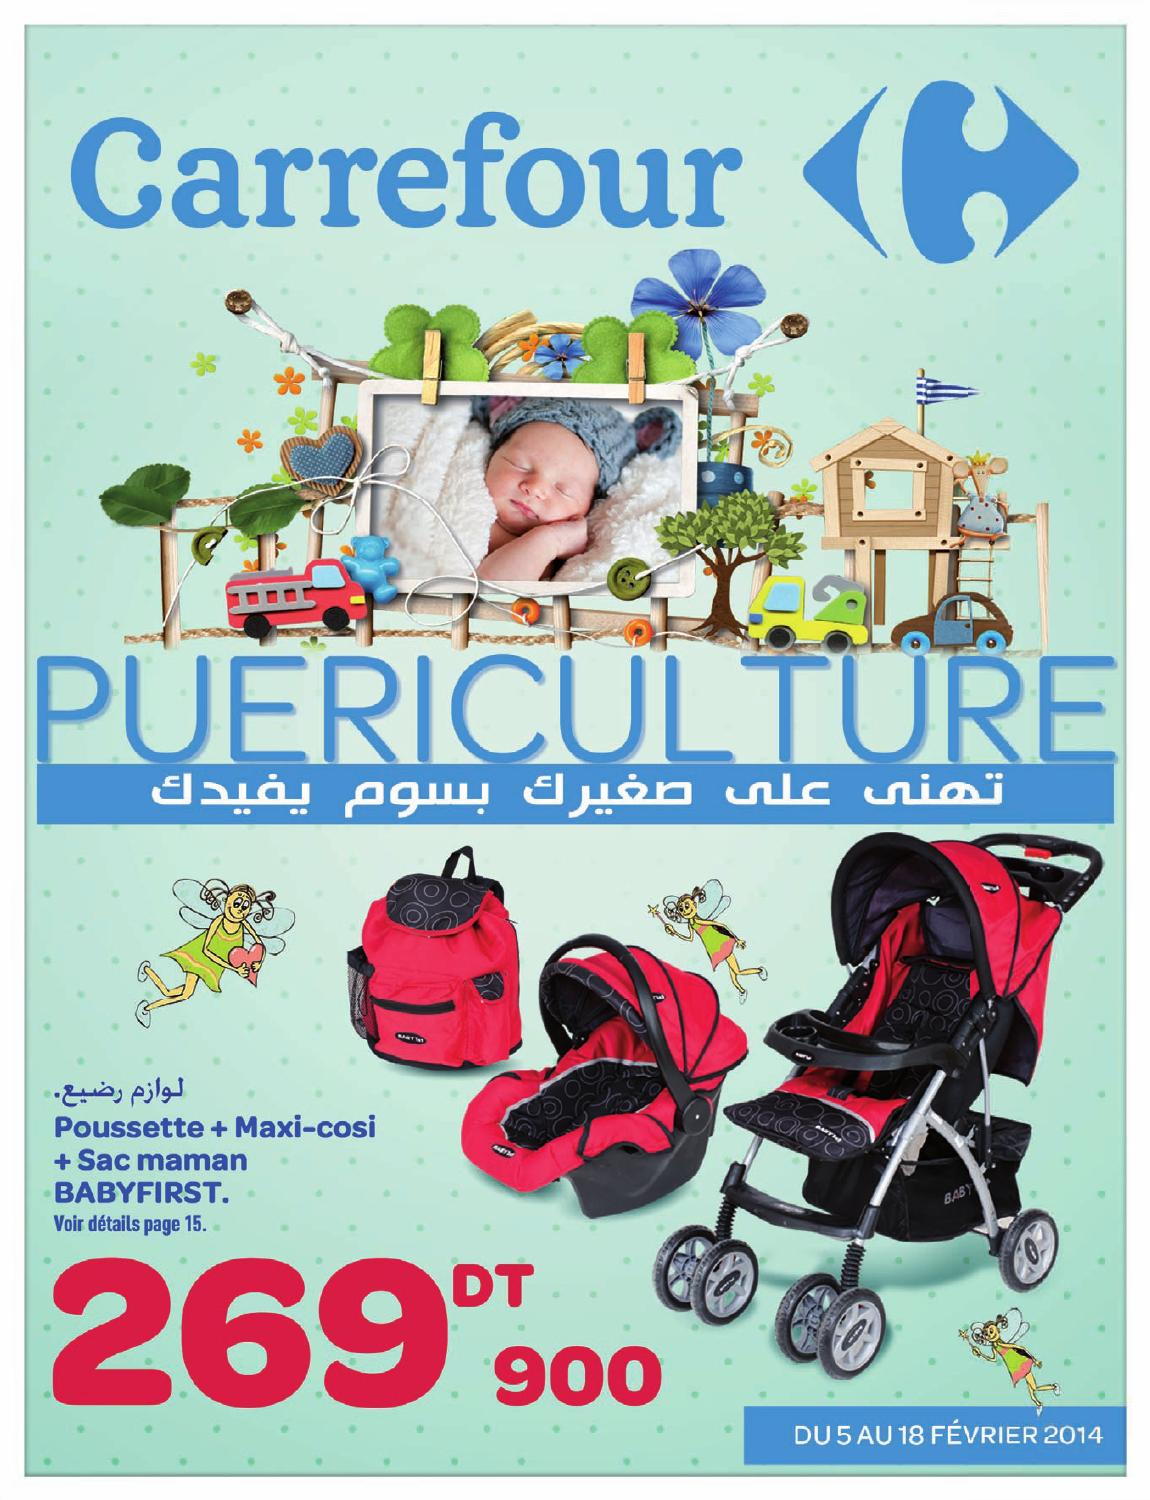 catalogue carrefour periculture by